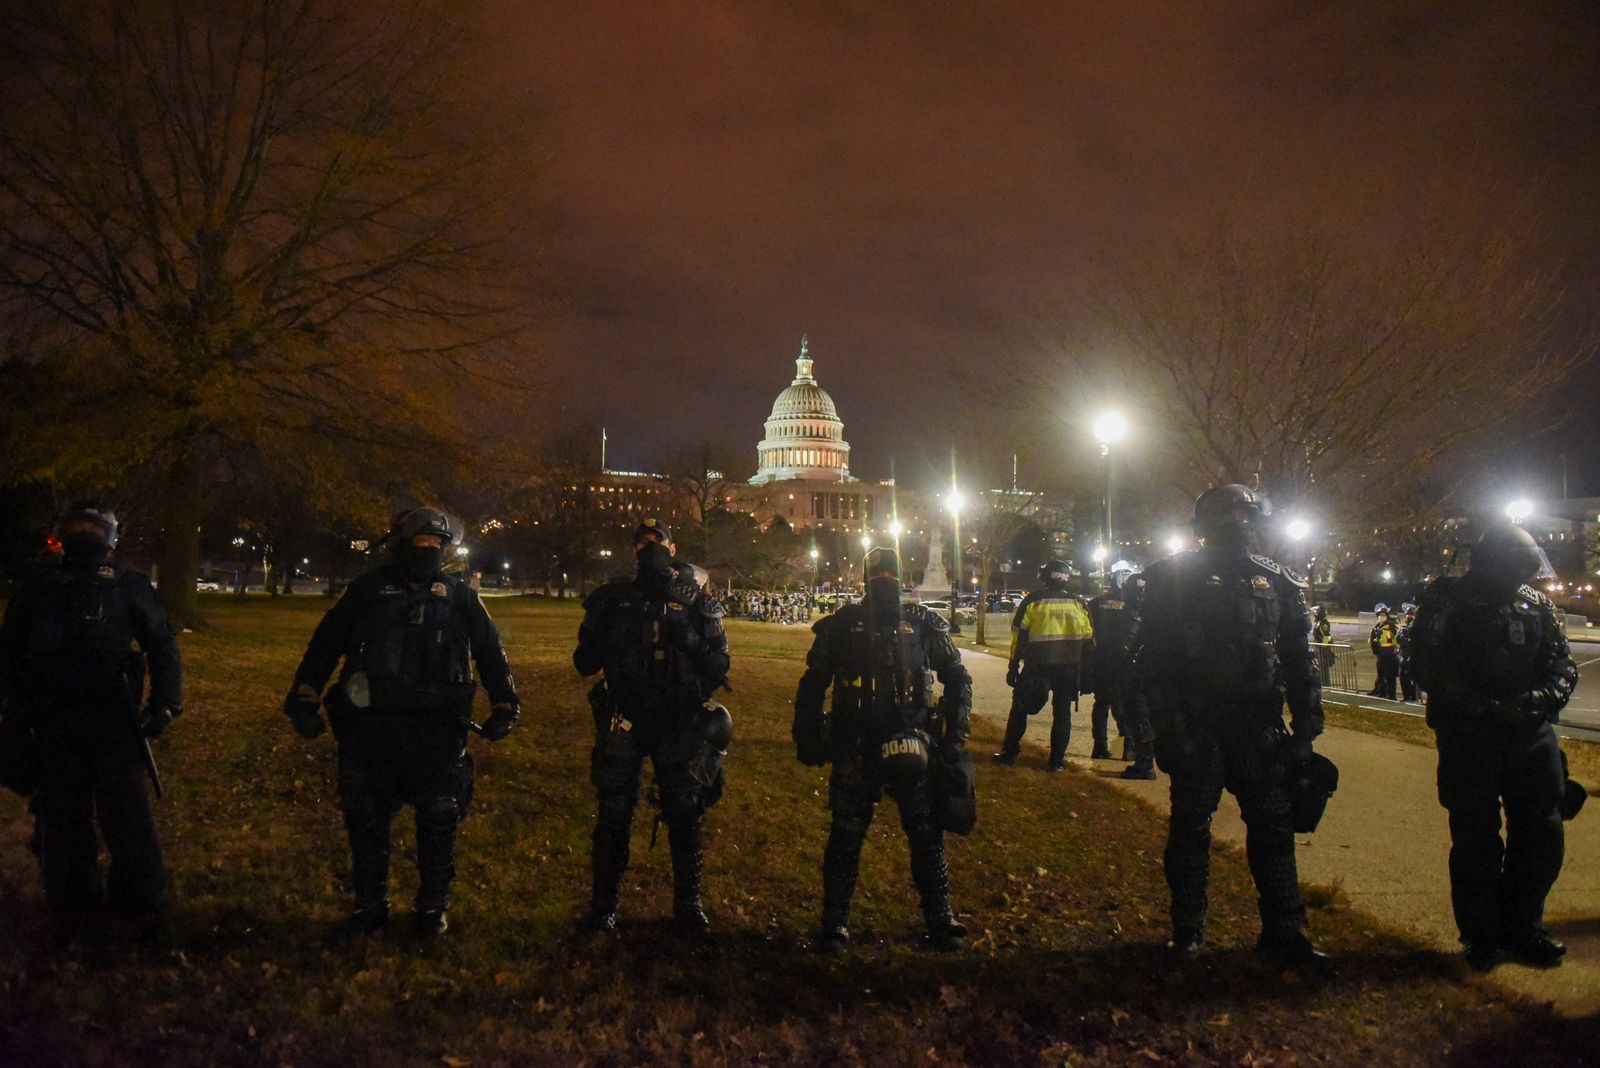 Security forces stand guard as the surroundings of the U.S. Capitol are empty during a curfew in Washington